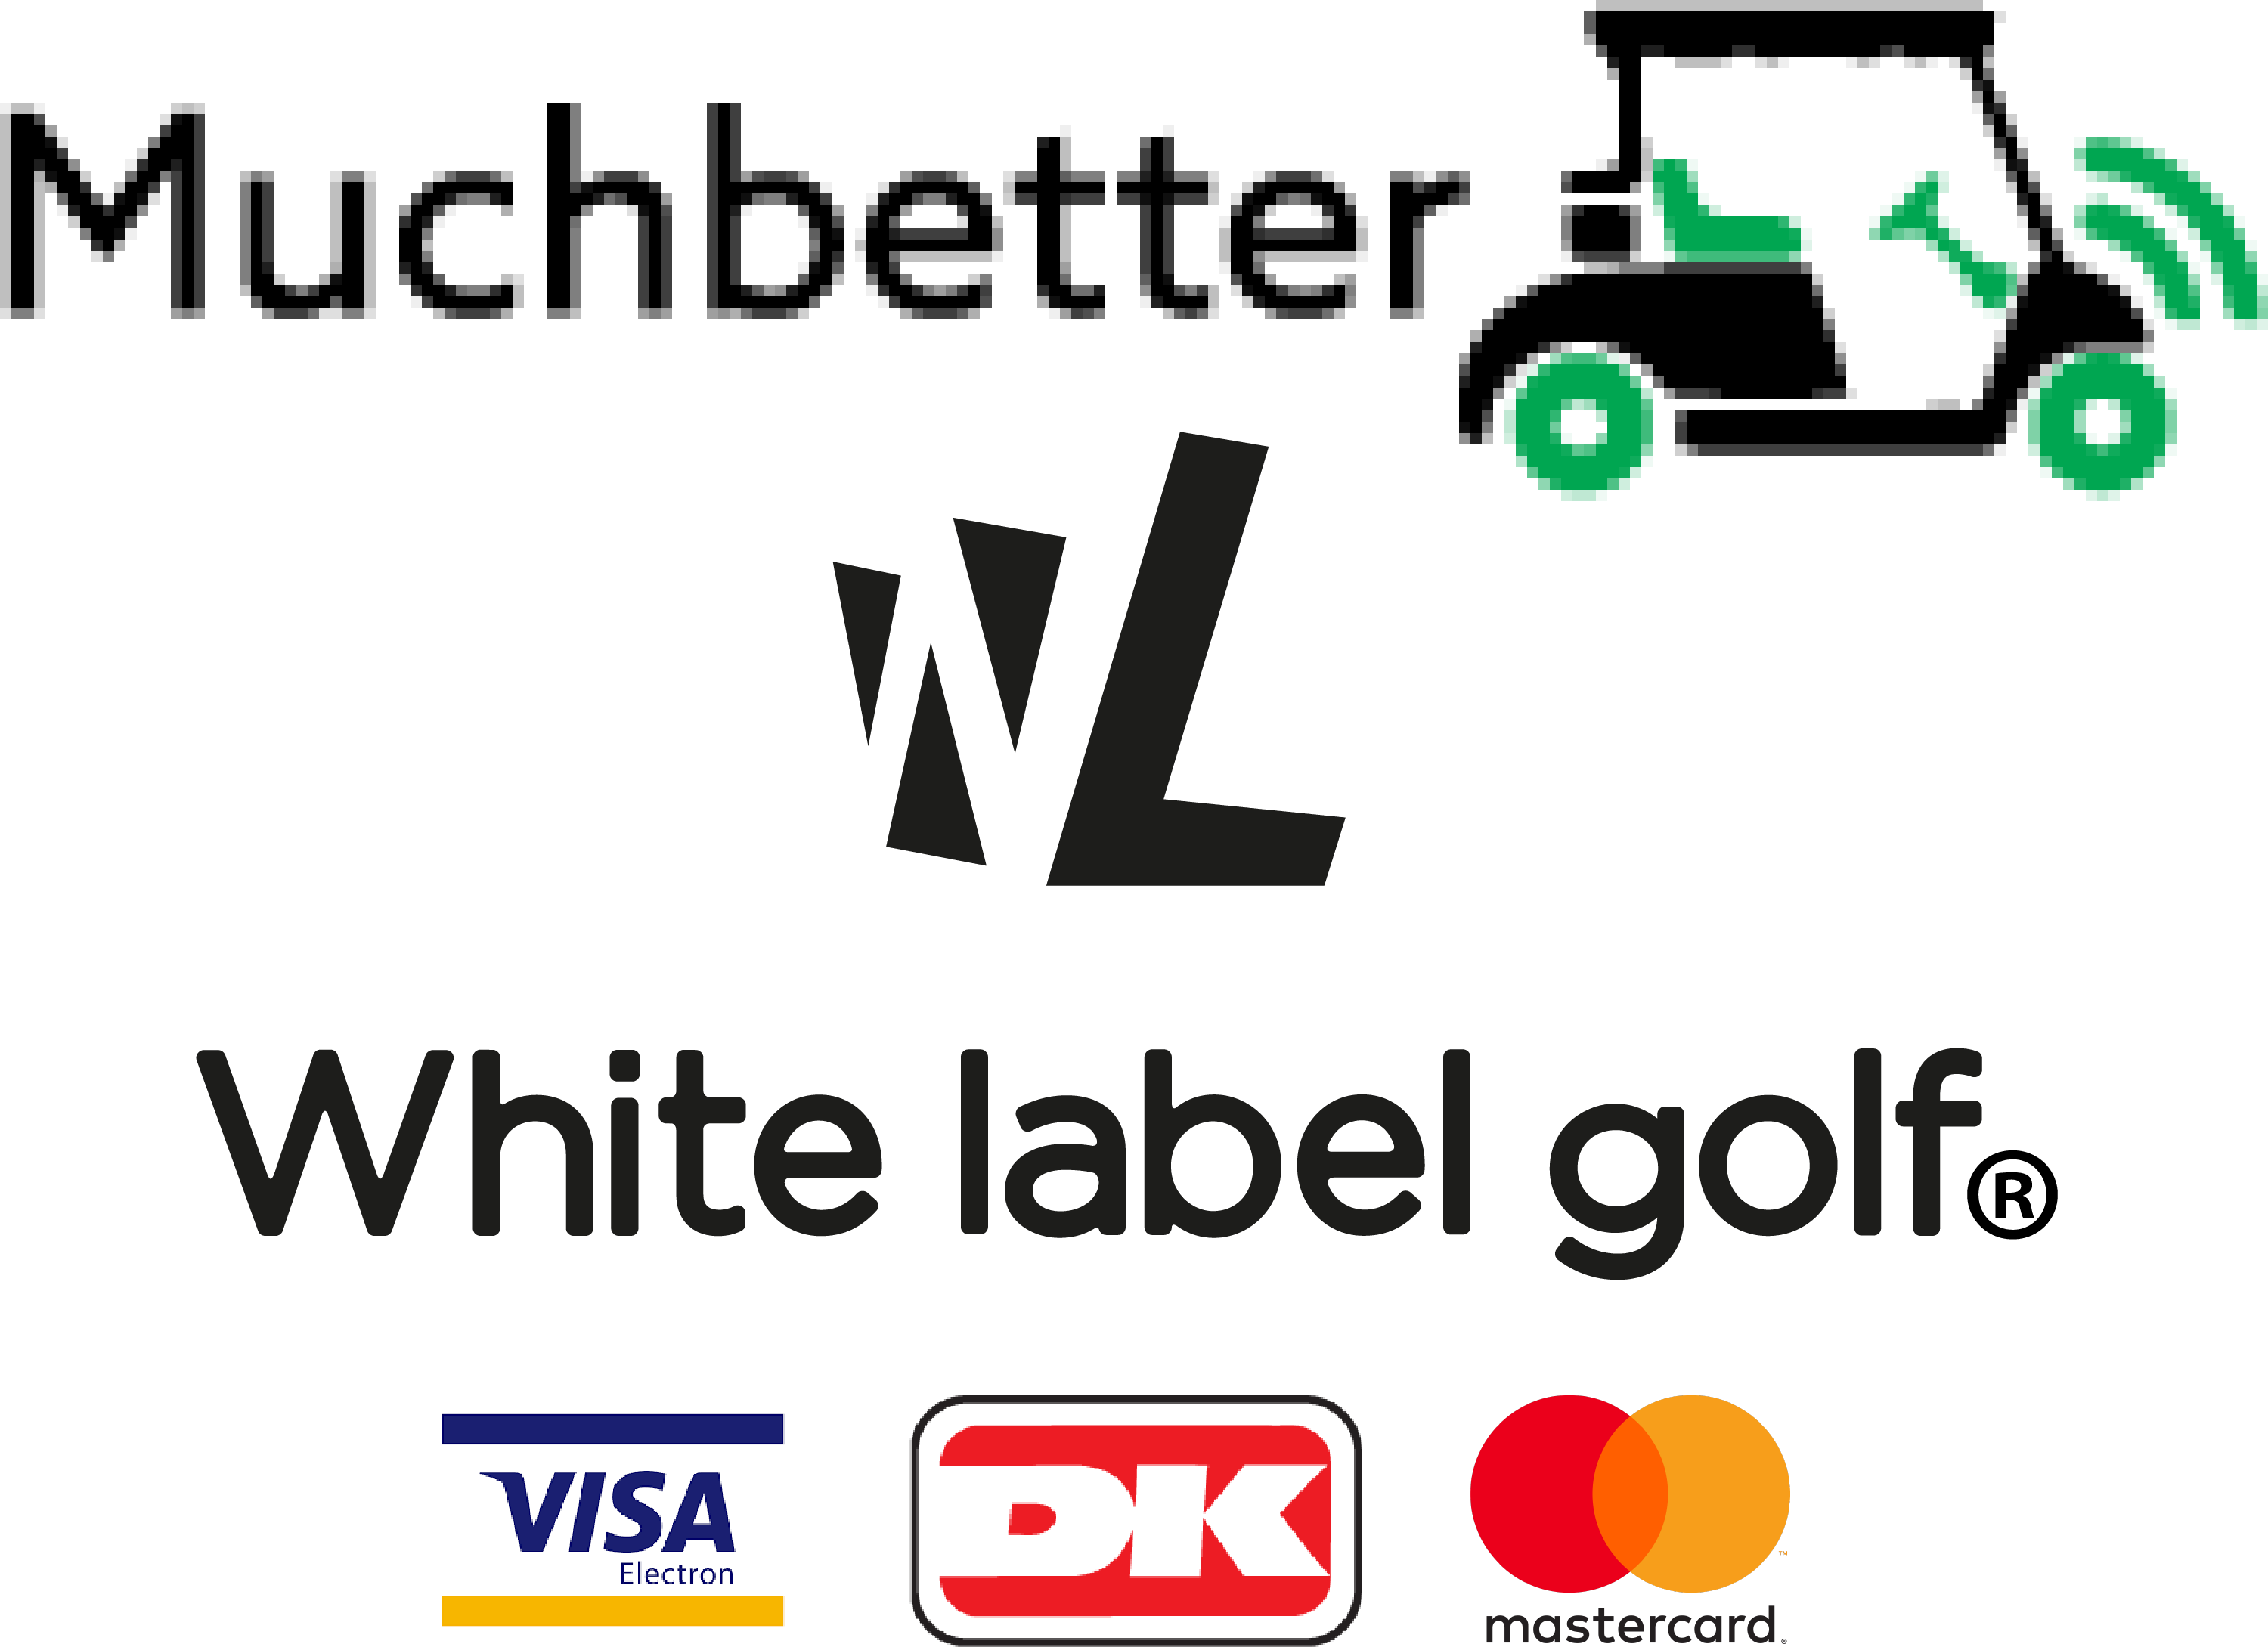 White label golfbolde